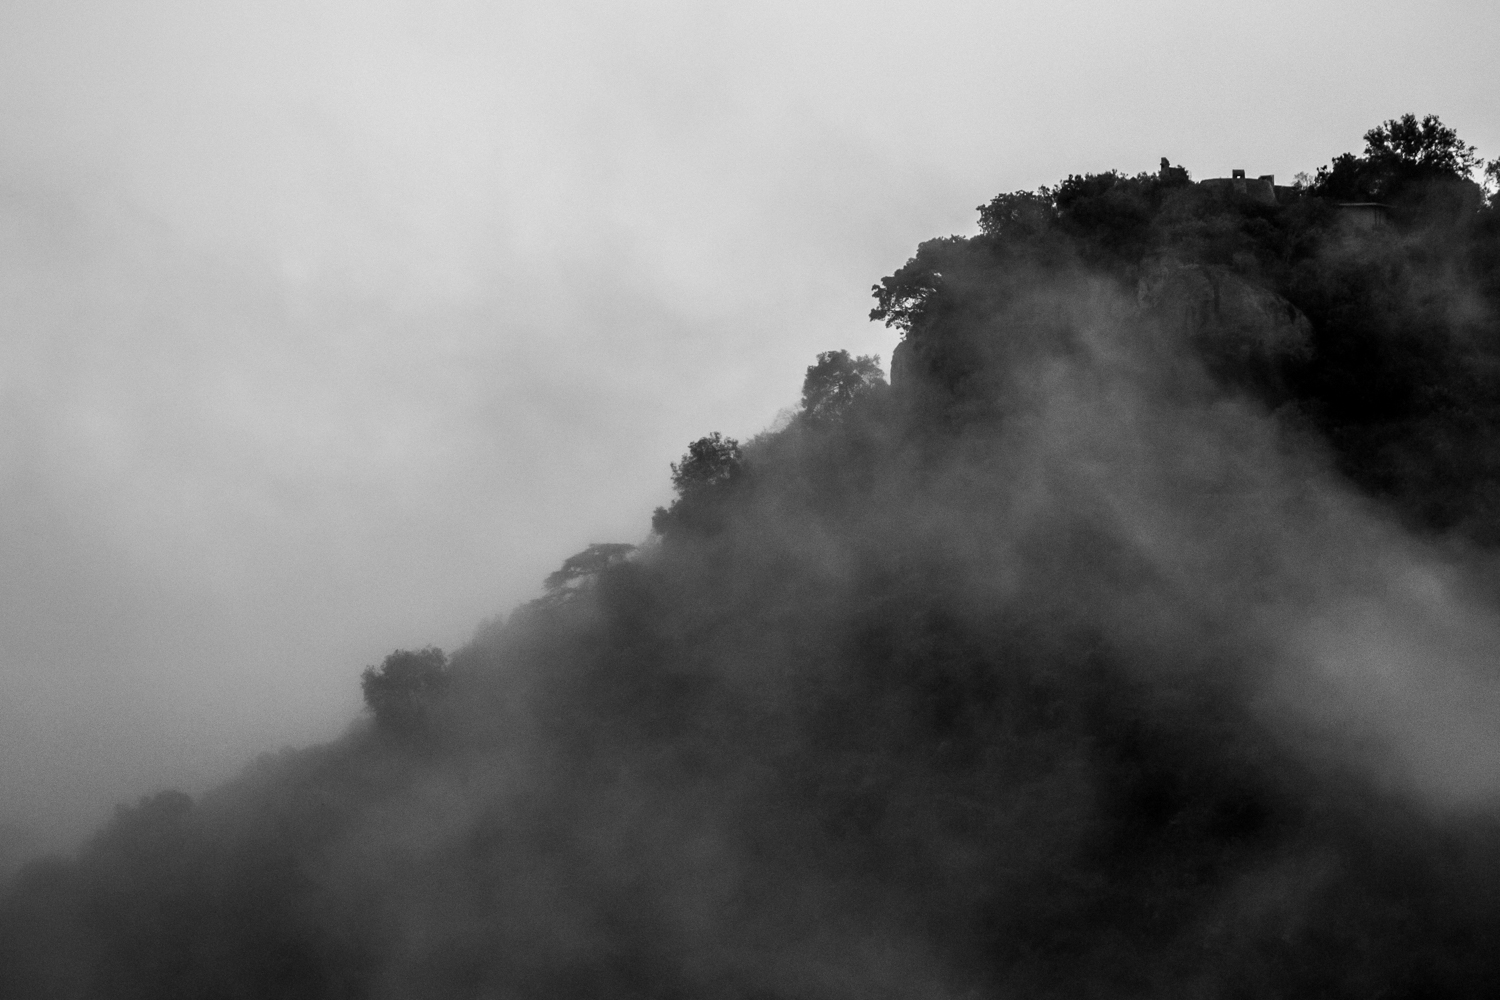 Angama in the Mist